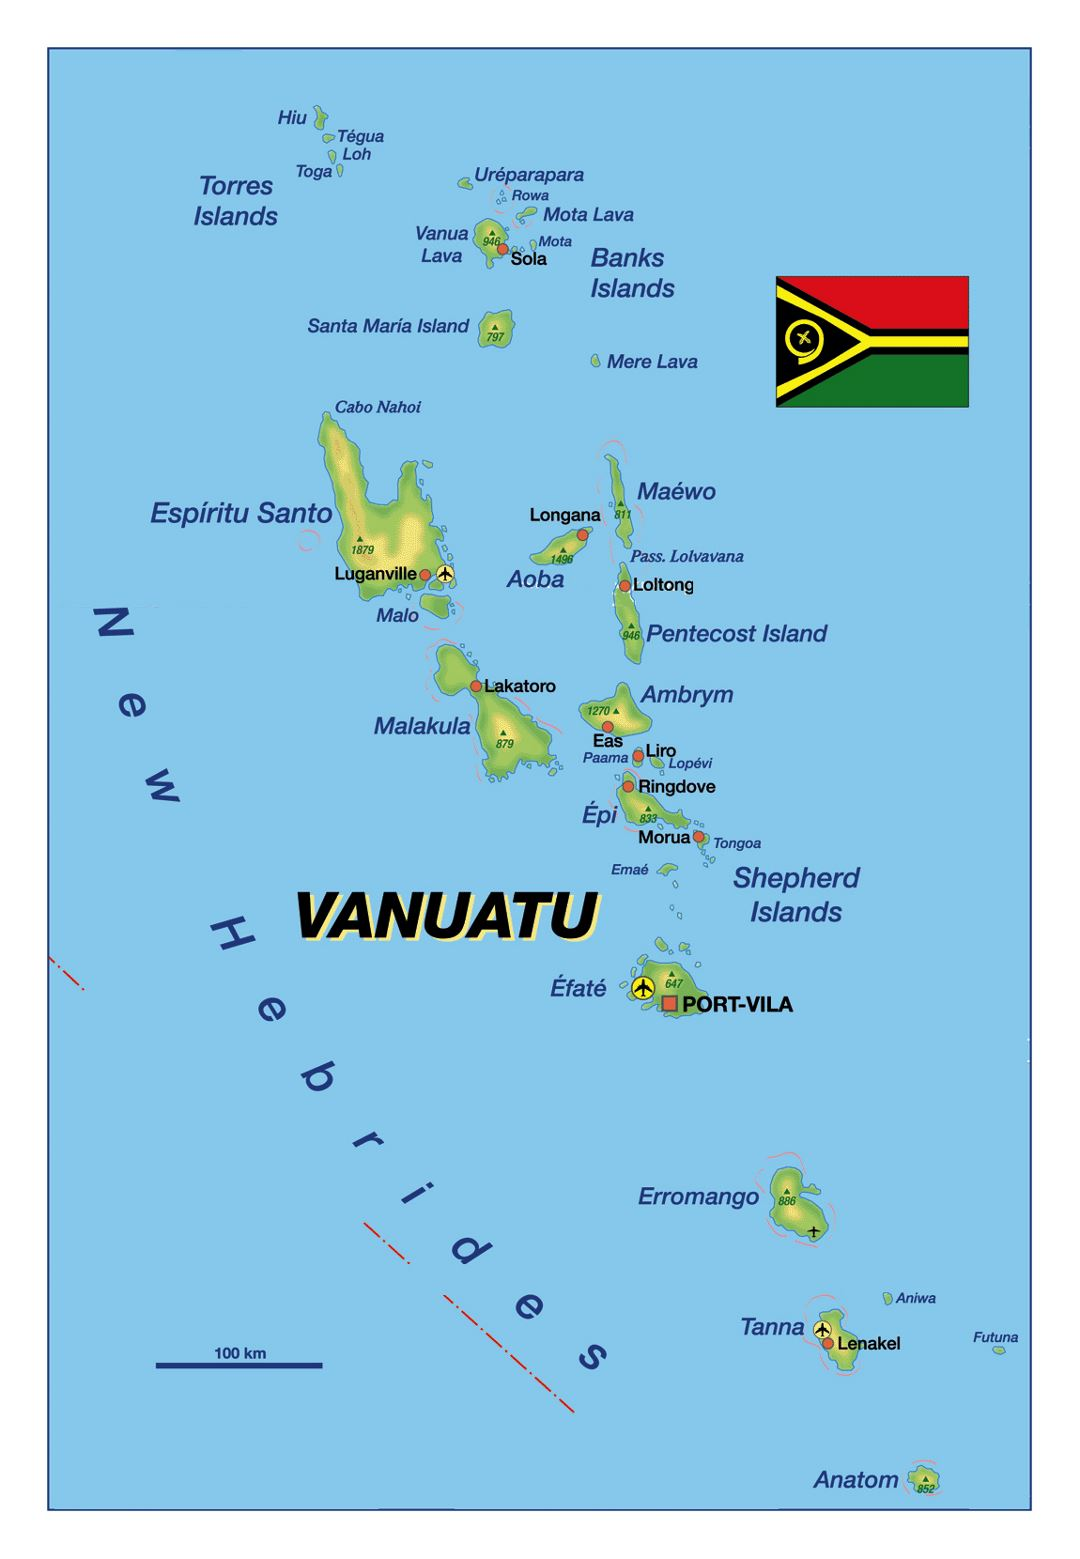 Detailed elevation map of Vanuatu with major cities and airports